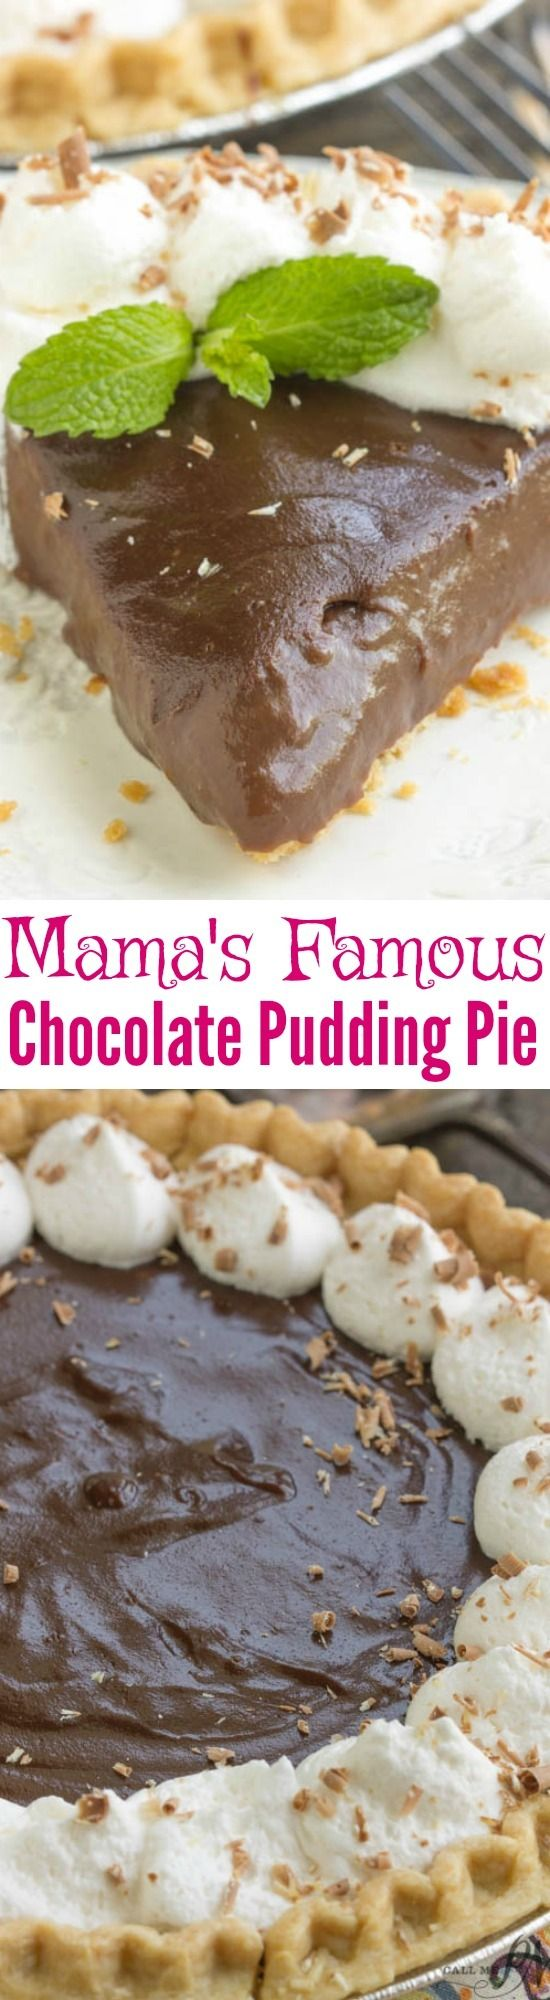 Mama's Famous From Scratch Chocolate Pudding Pie has a velvety smooth texture of decadent chocolate. A classic recipe that has stood the test of time. Is it your recipe box? Click for #recipe> http://www.callmepmc.com/mamas-famous-from-scratch-chocolate-pudding-pie/?utm_campaign=coschedule&utm_source=pinterest&utm_medium=Paula%20%7C%20CallMePMc.com&utm_content=Mama%27s%20Famous%20From%20Scratch%20Chocolate%20Pudding%20Pie  For more recipes like this, follow me on Facebook at…